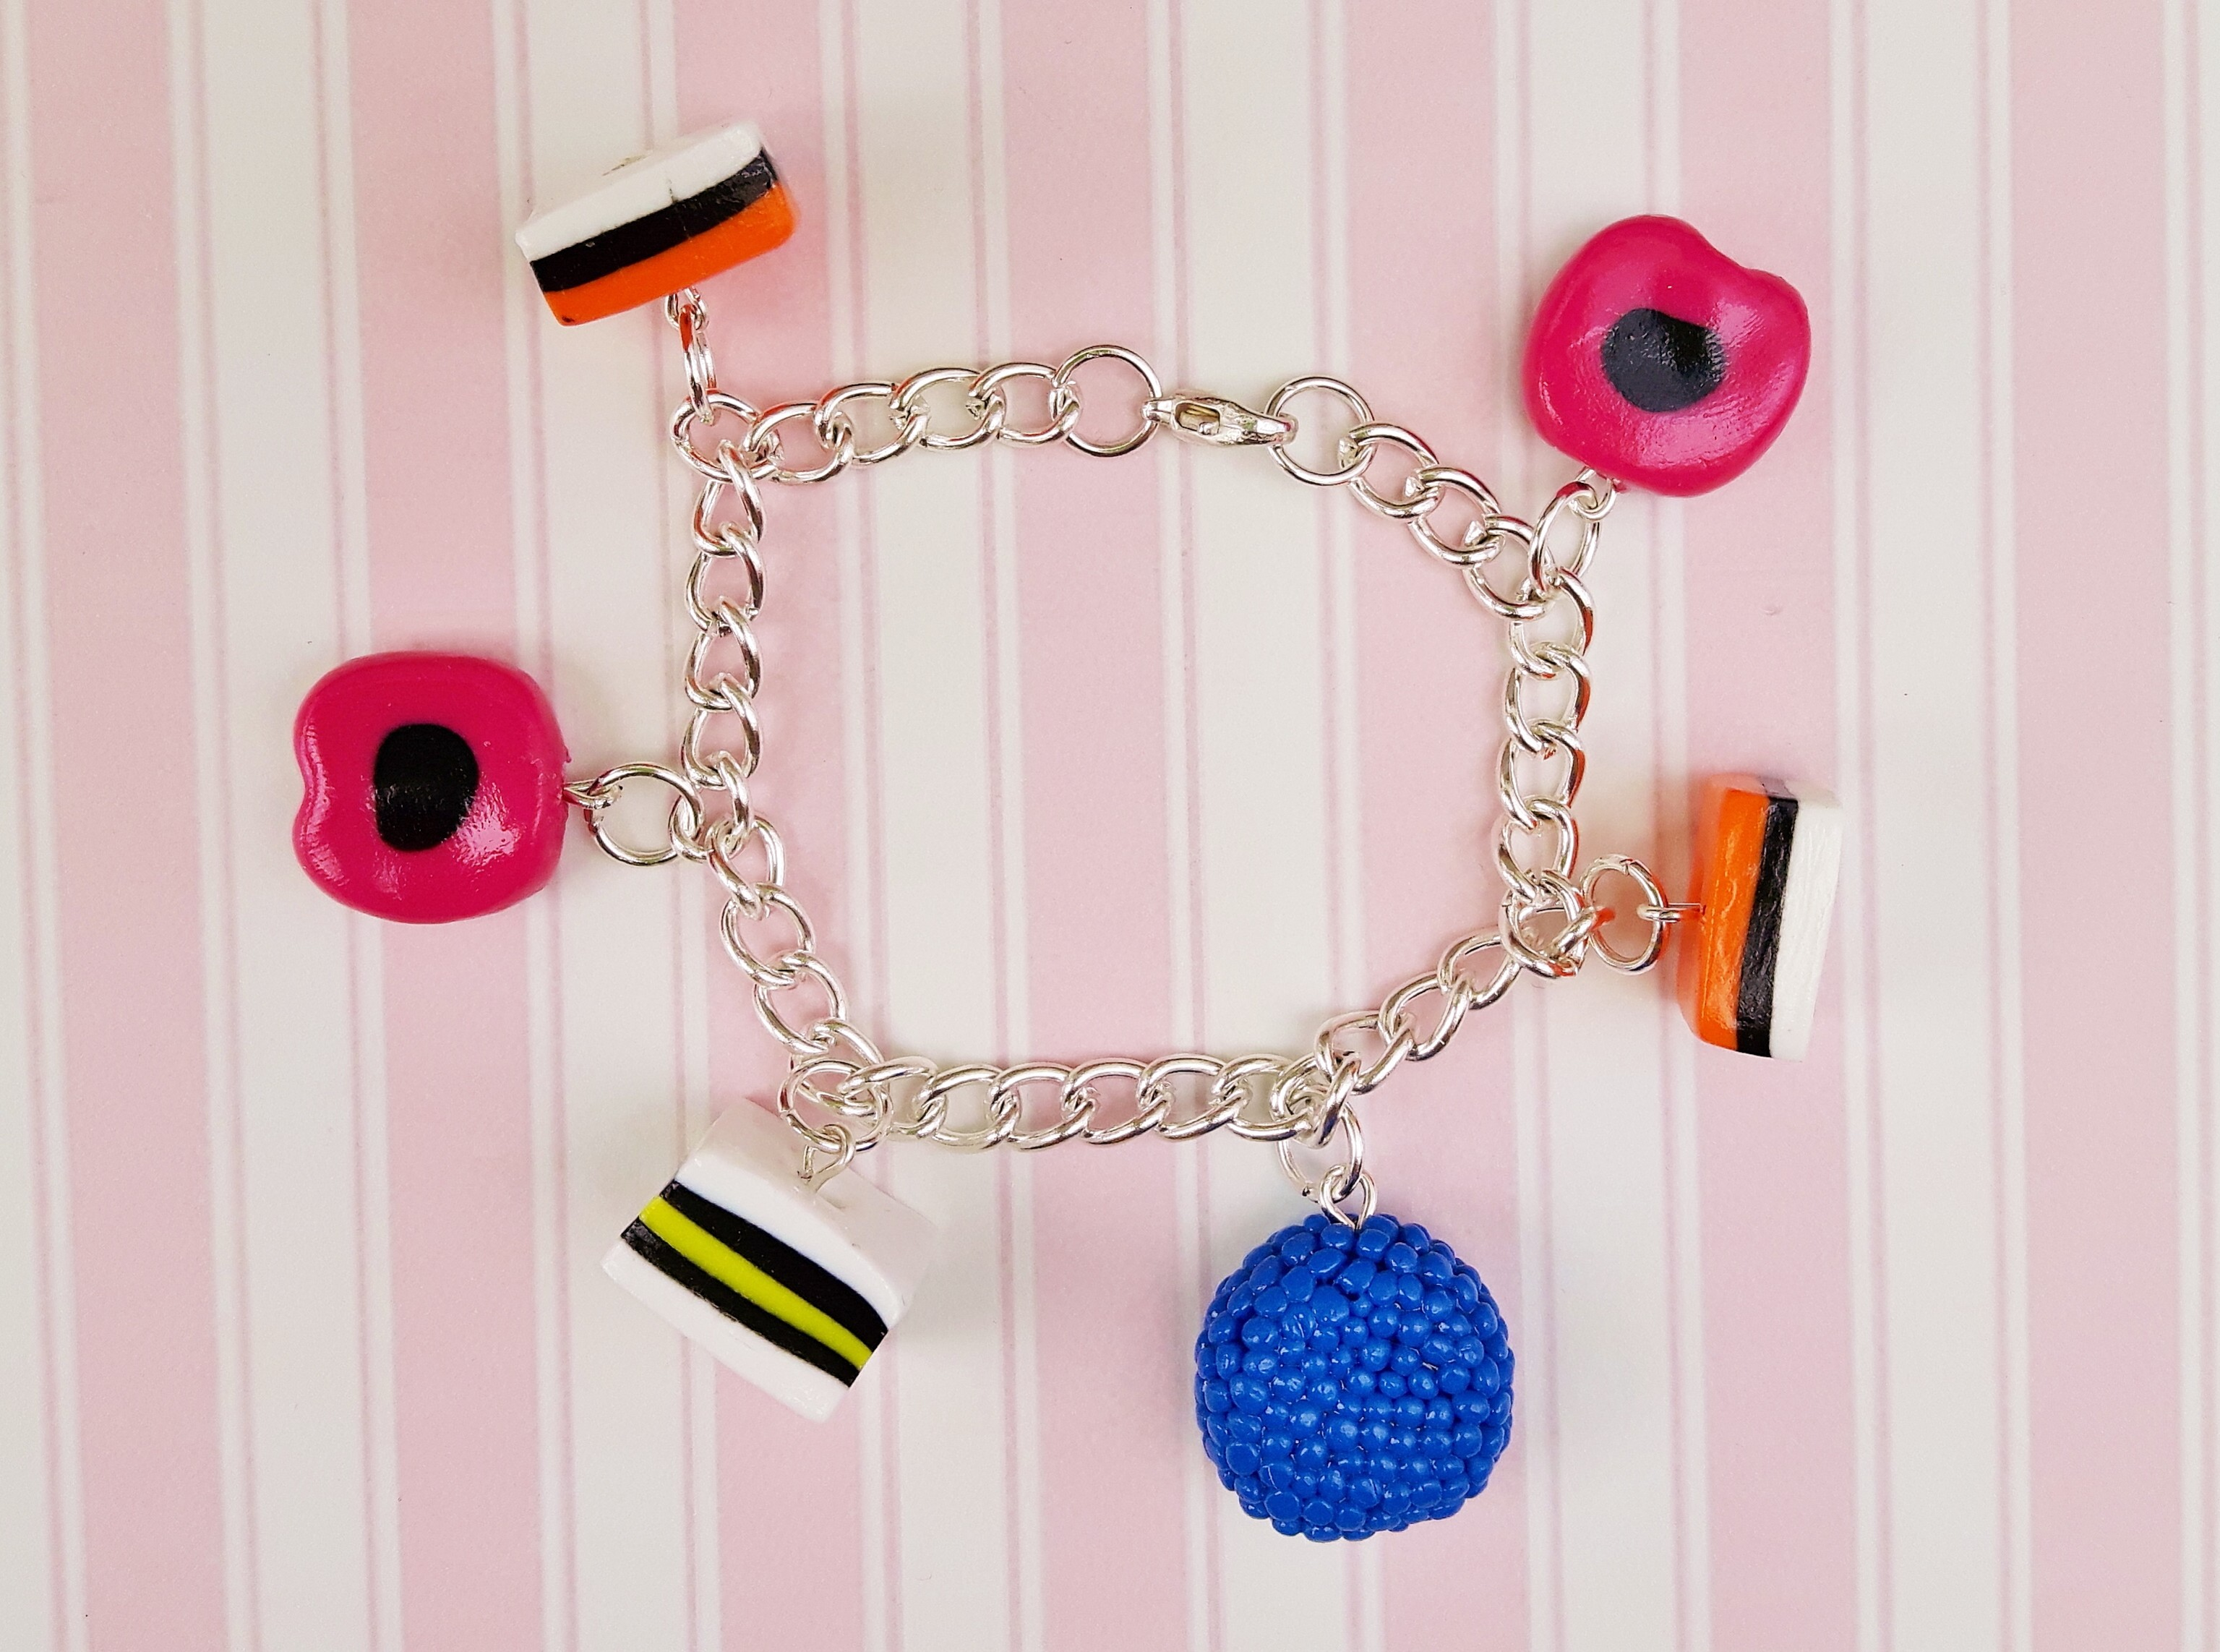 Handmade, cute, sweet, candy, pick 'n' mix, novelty, kitsch, kawaii, jewellery, accessories, gifts, fashion, made from, Fimo, polymer clay, silver, plated, nickel free, in uk, Liqorice, allsorts, charm, bracelet,